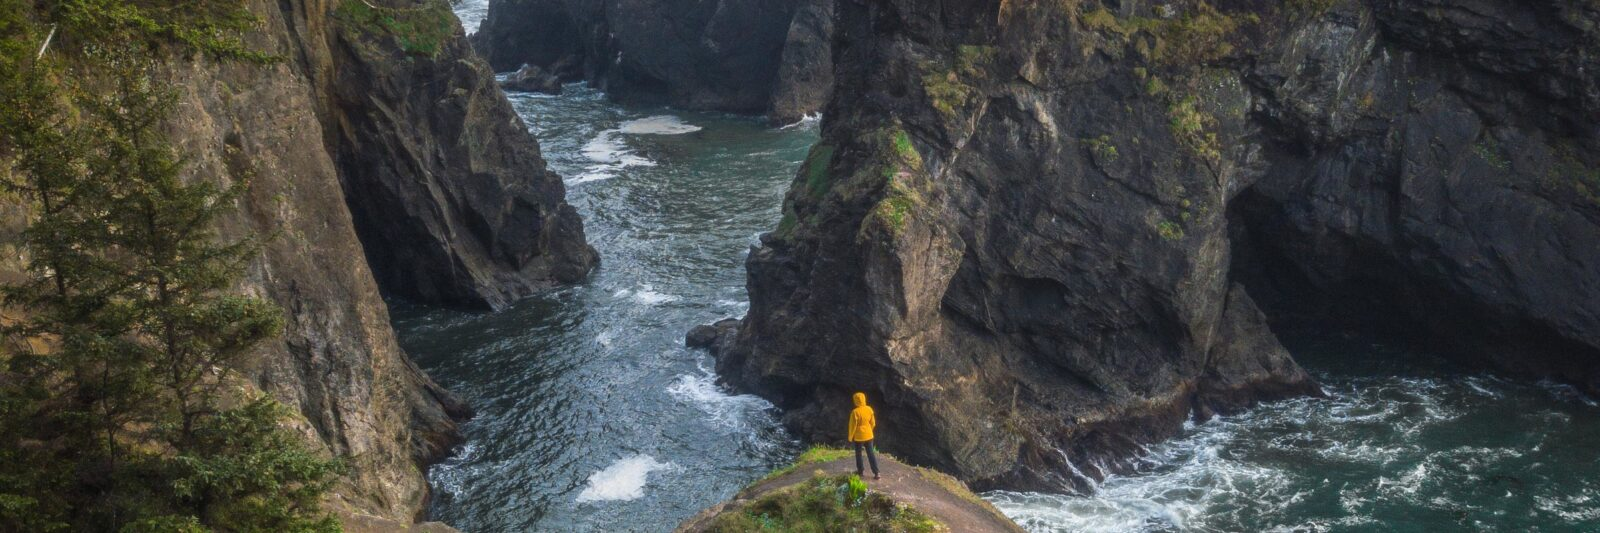 walking on a natural bridge at the Samuel H Boardman Scenic Corridor on your Oregon coast road trip